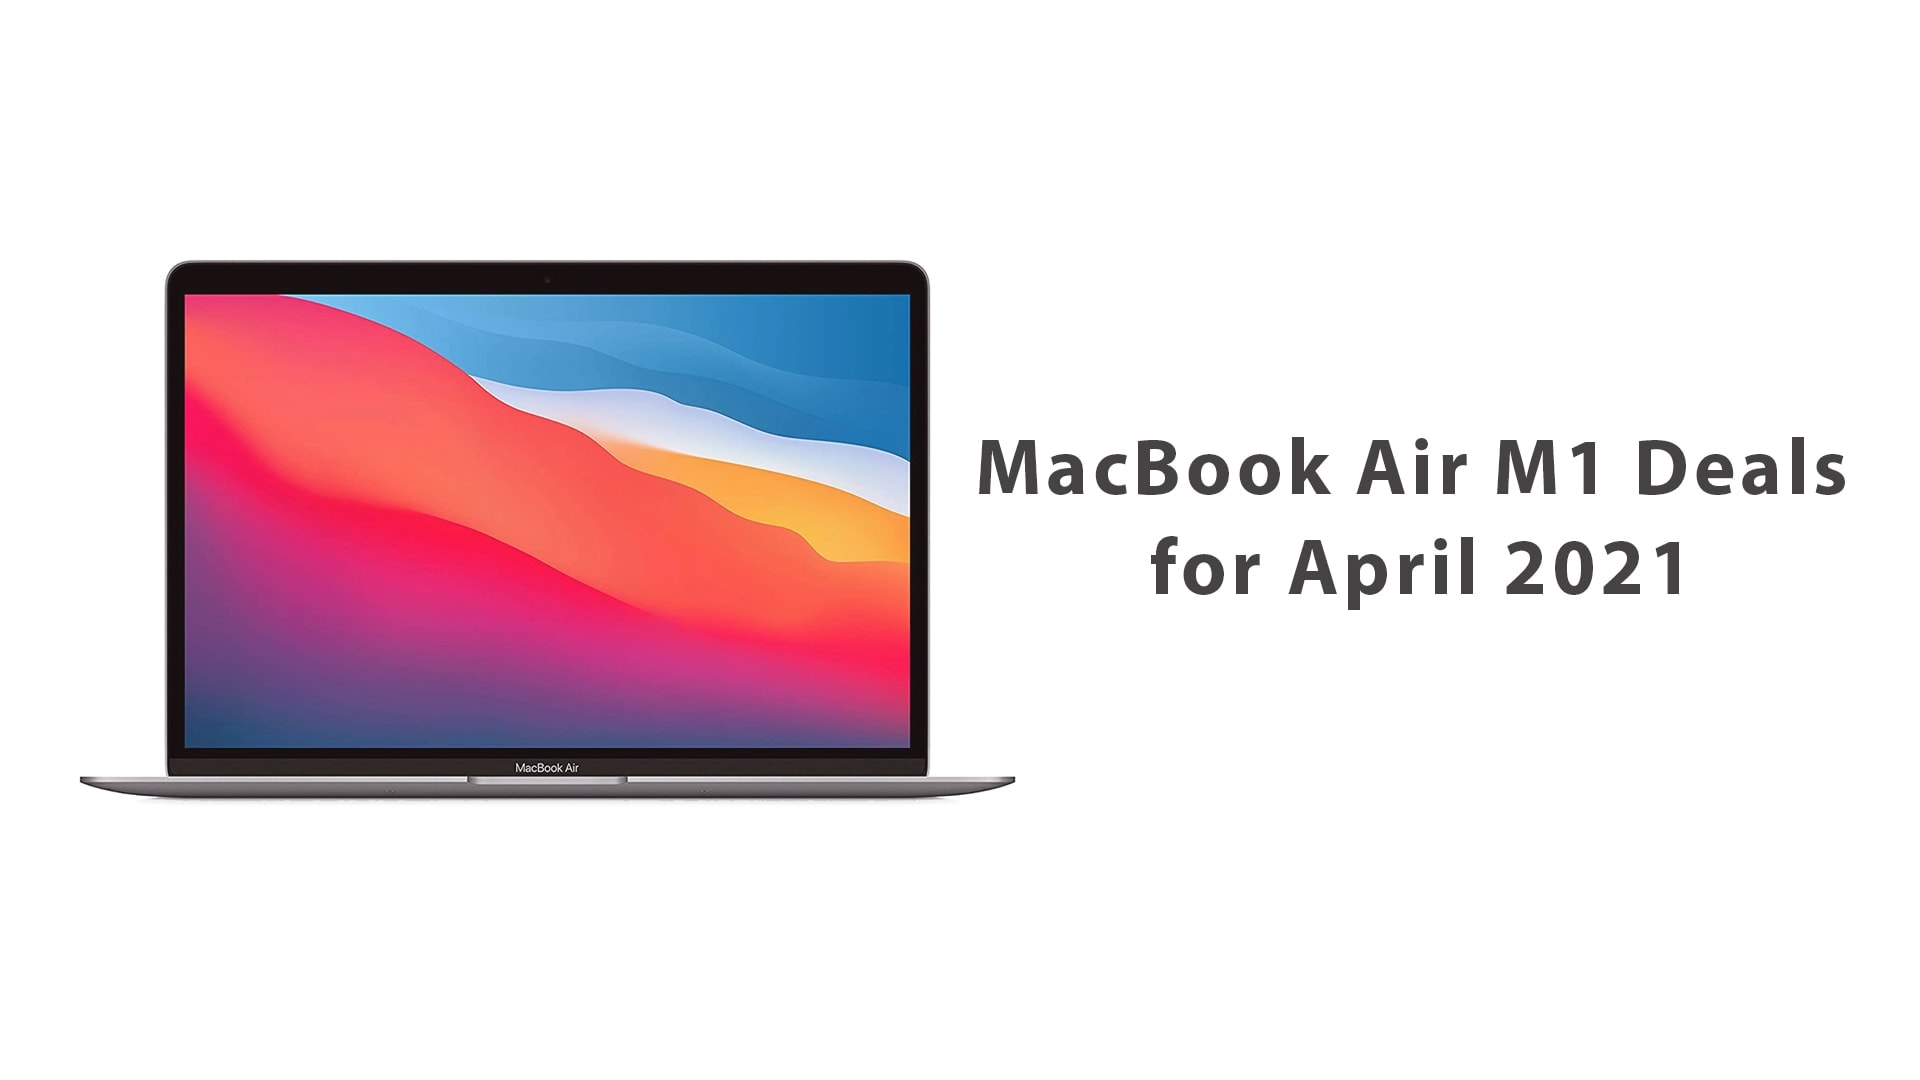 Best MacBook Air M1 Deals for May 2021